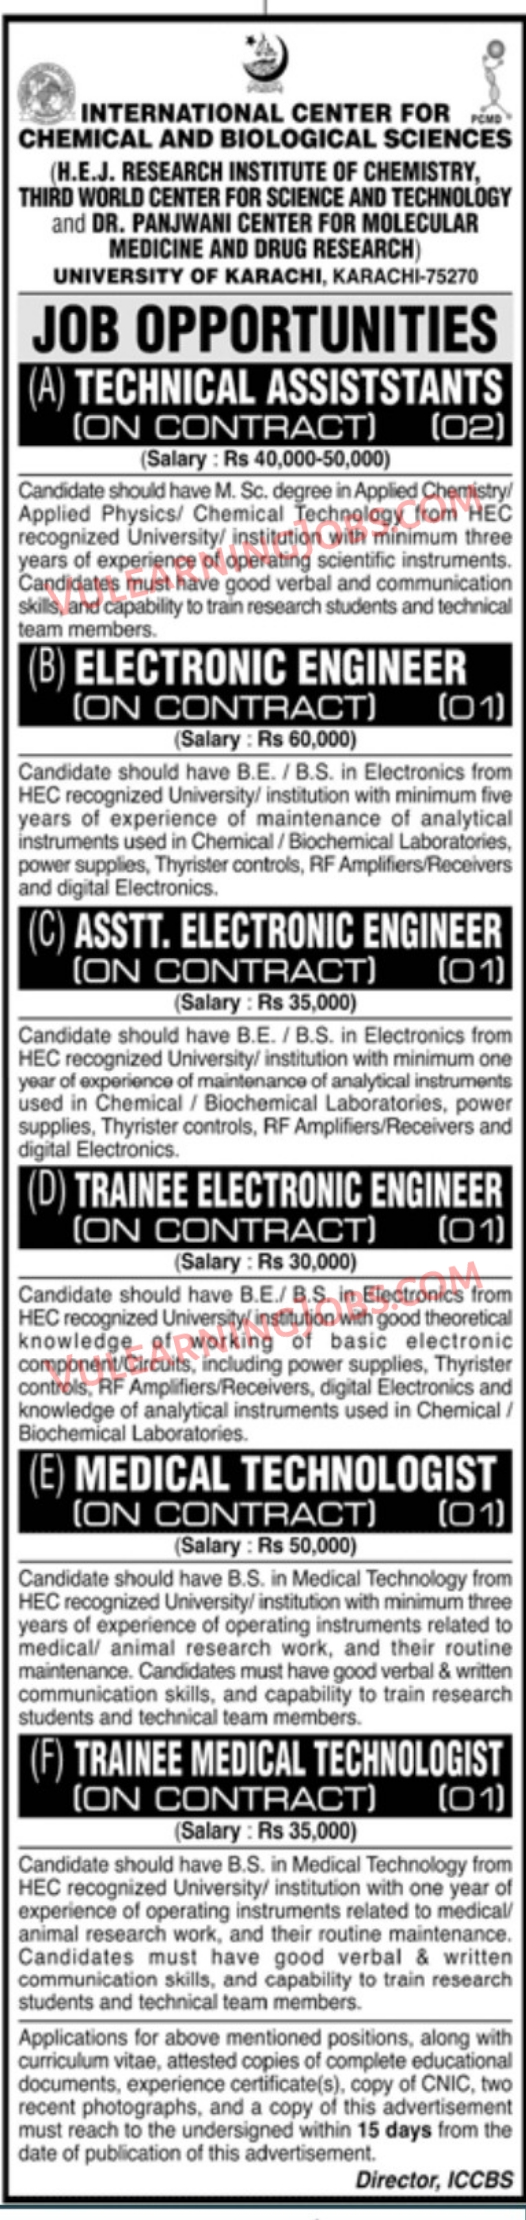 International Center For Chemical And Biological Sciences Jobs September 2021 For Technical Assistant, Electronic Engineer, Assistant Electronic Engineer, Trainee Electronic Engineer & Other Latest